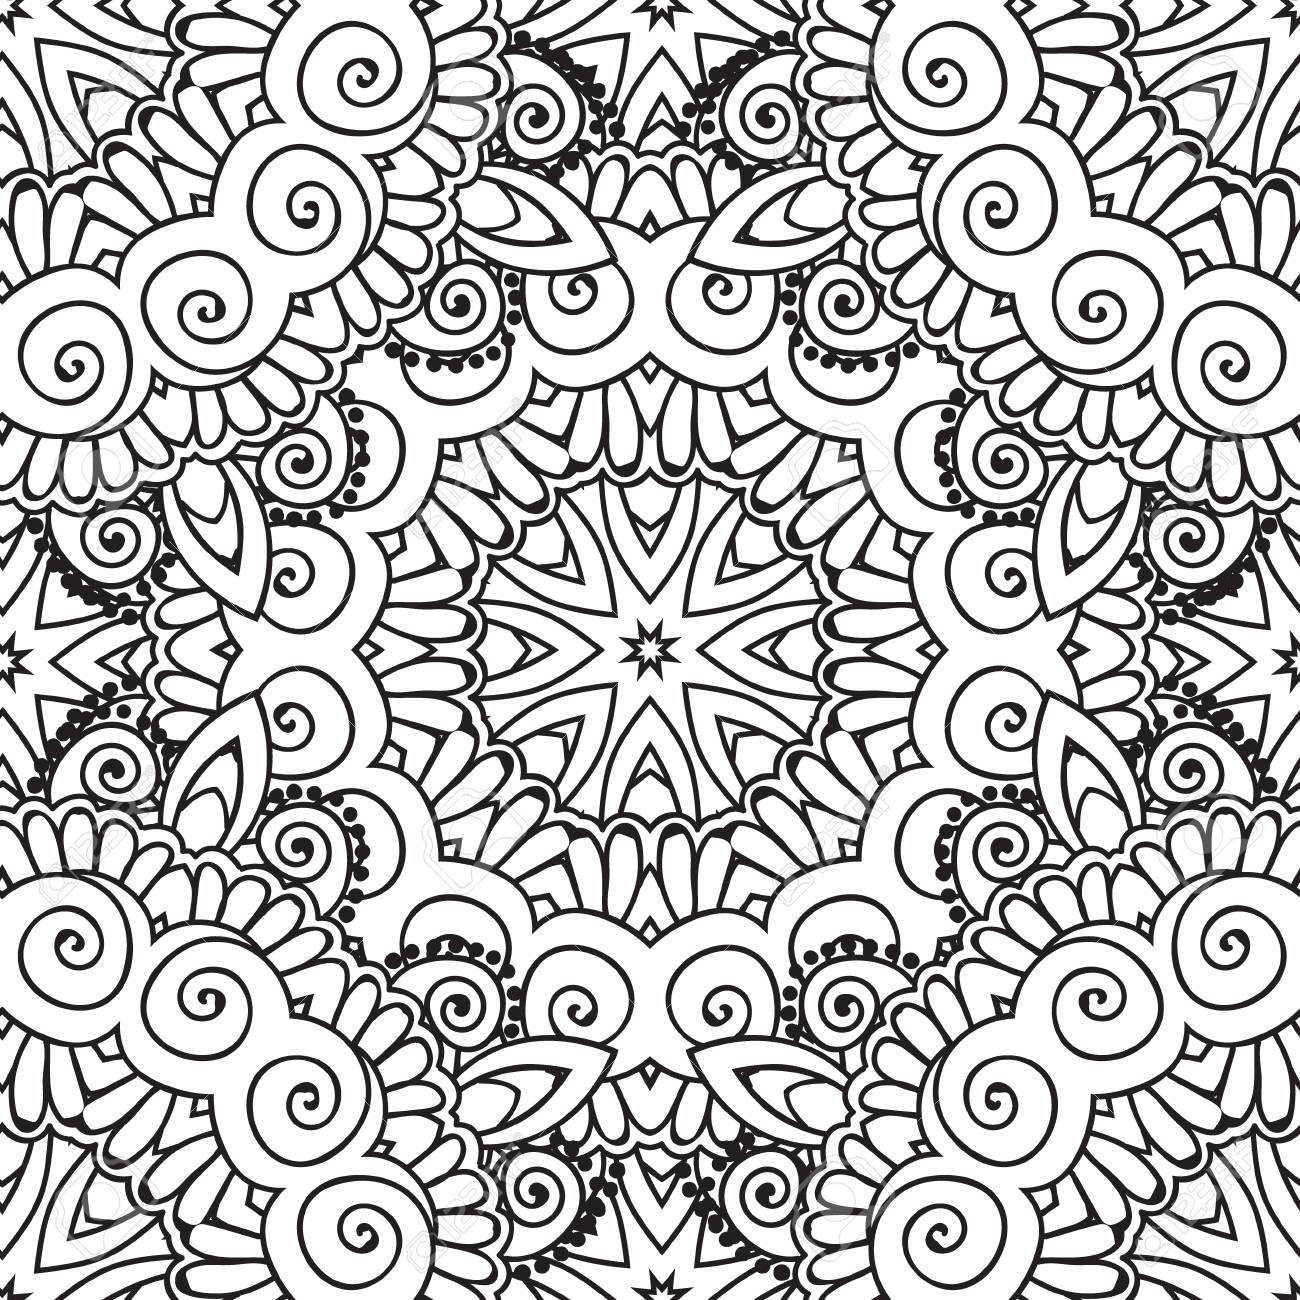 Coloring pages for adults. Coloring book.Decorative hand drawn..